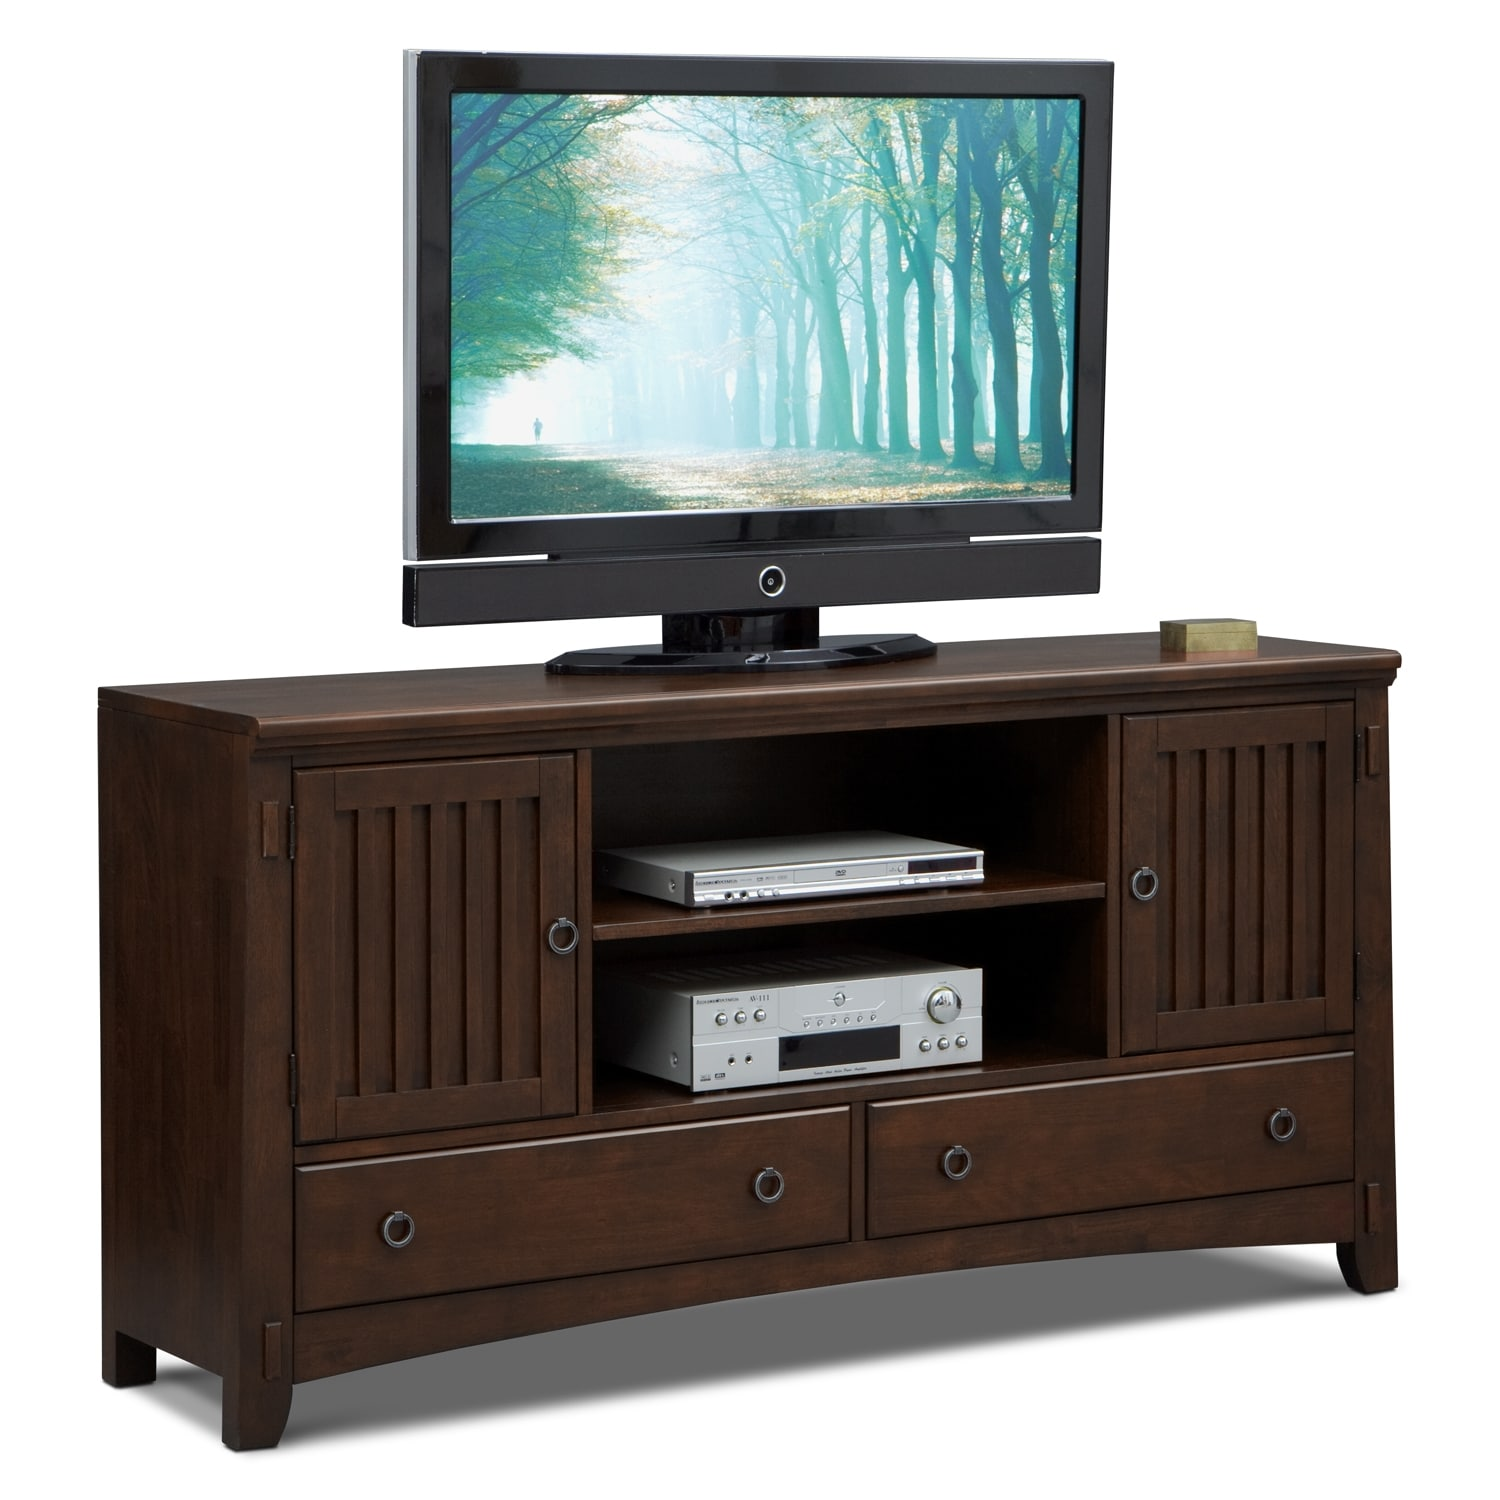 Tribune highlights likewise 93578565615d2412 as well 63164 in addition 1981667247 together with Schools education. on value city furniture wall unit entertainment center